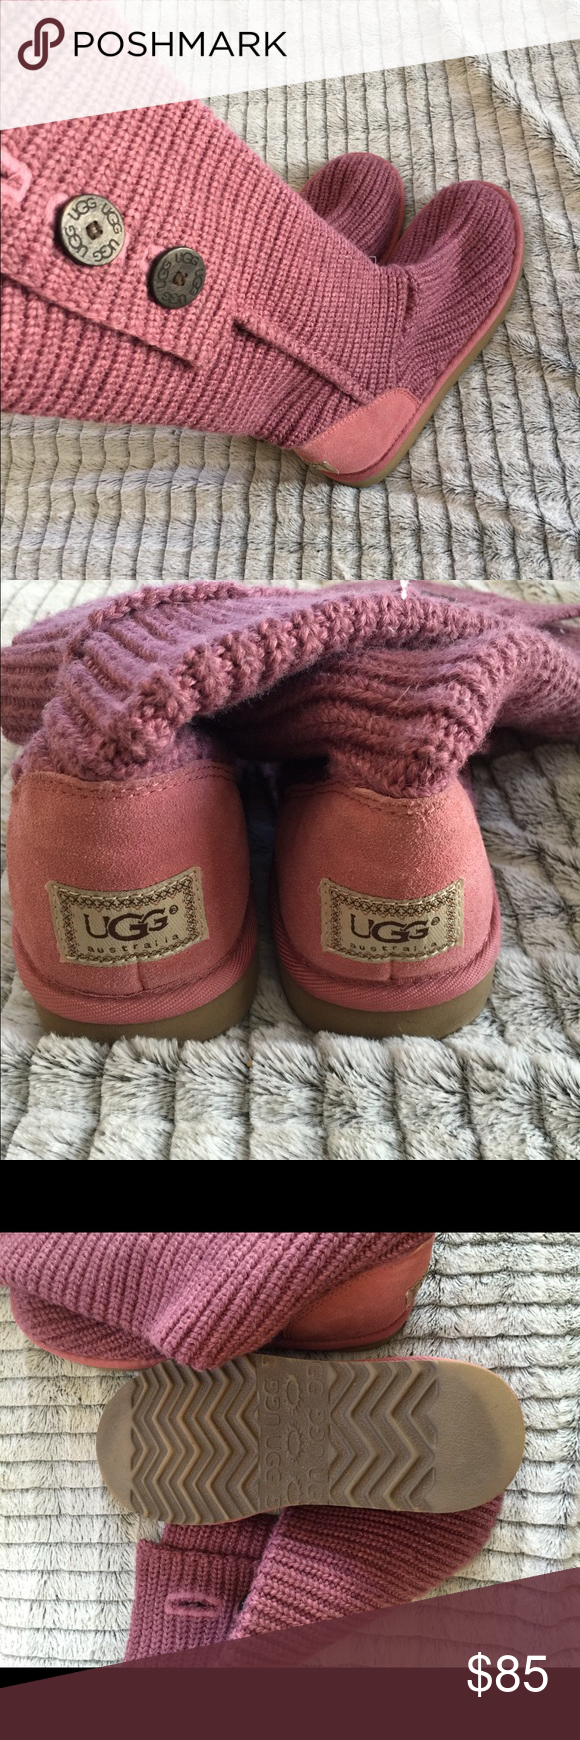 Tall uggs Authentic! Barely worn, tall sweater/button ugg boots UGG Shoes Winter & Rain Boots